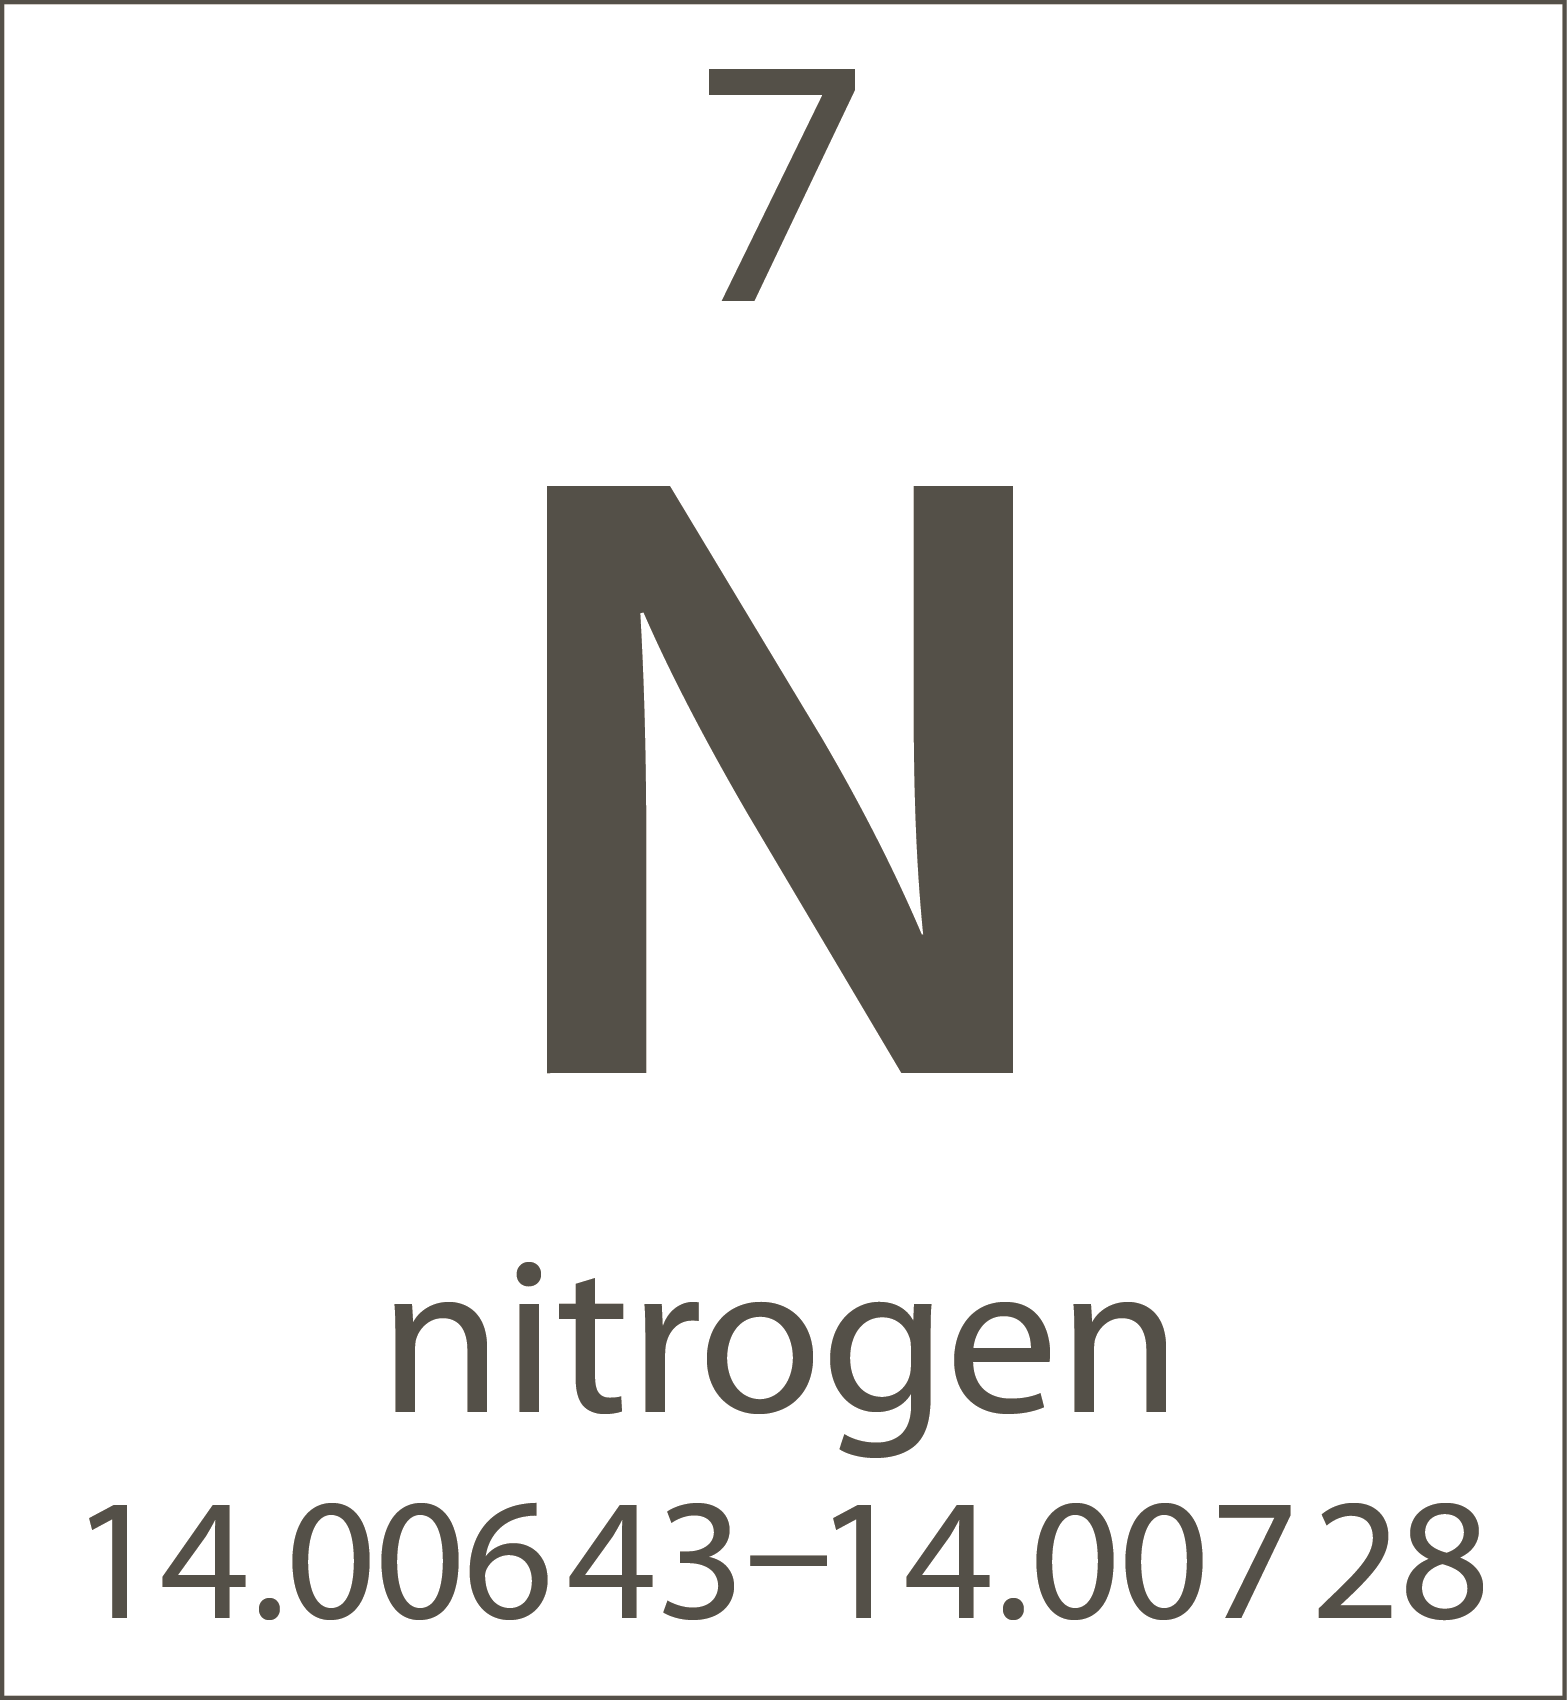 Nitrogen chnops elements essential to life lessons tes teach resource information gamestrikefo Image collections